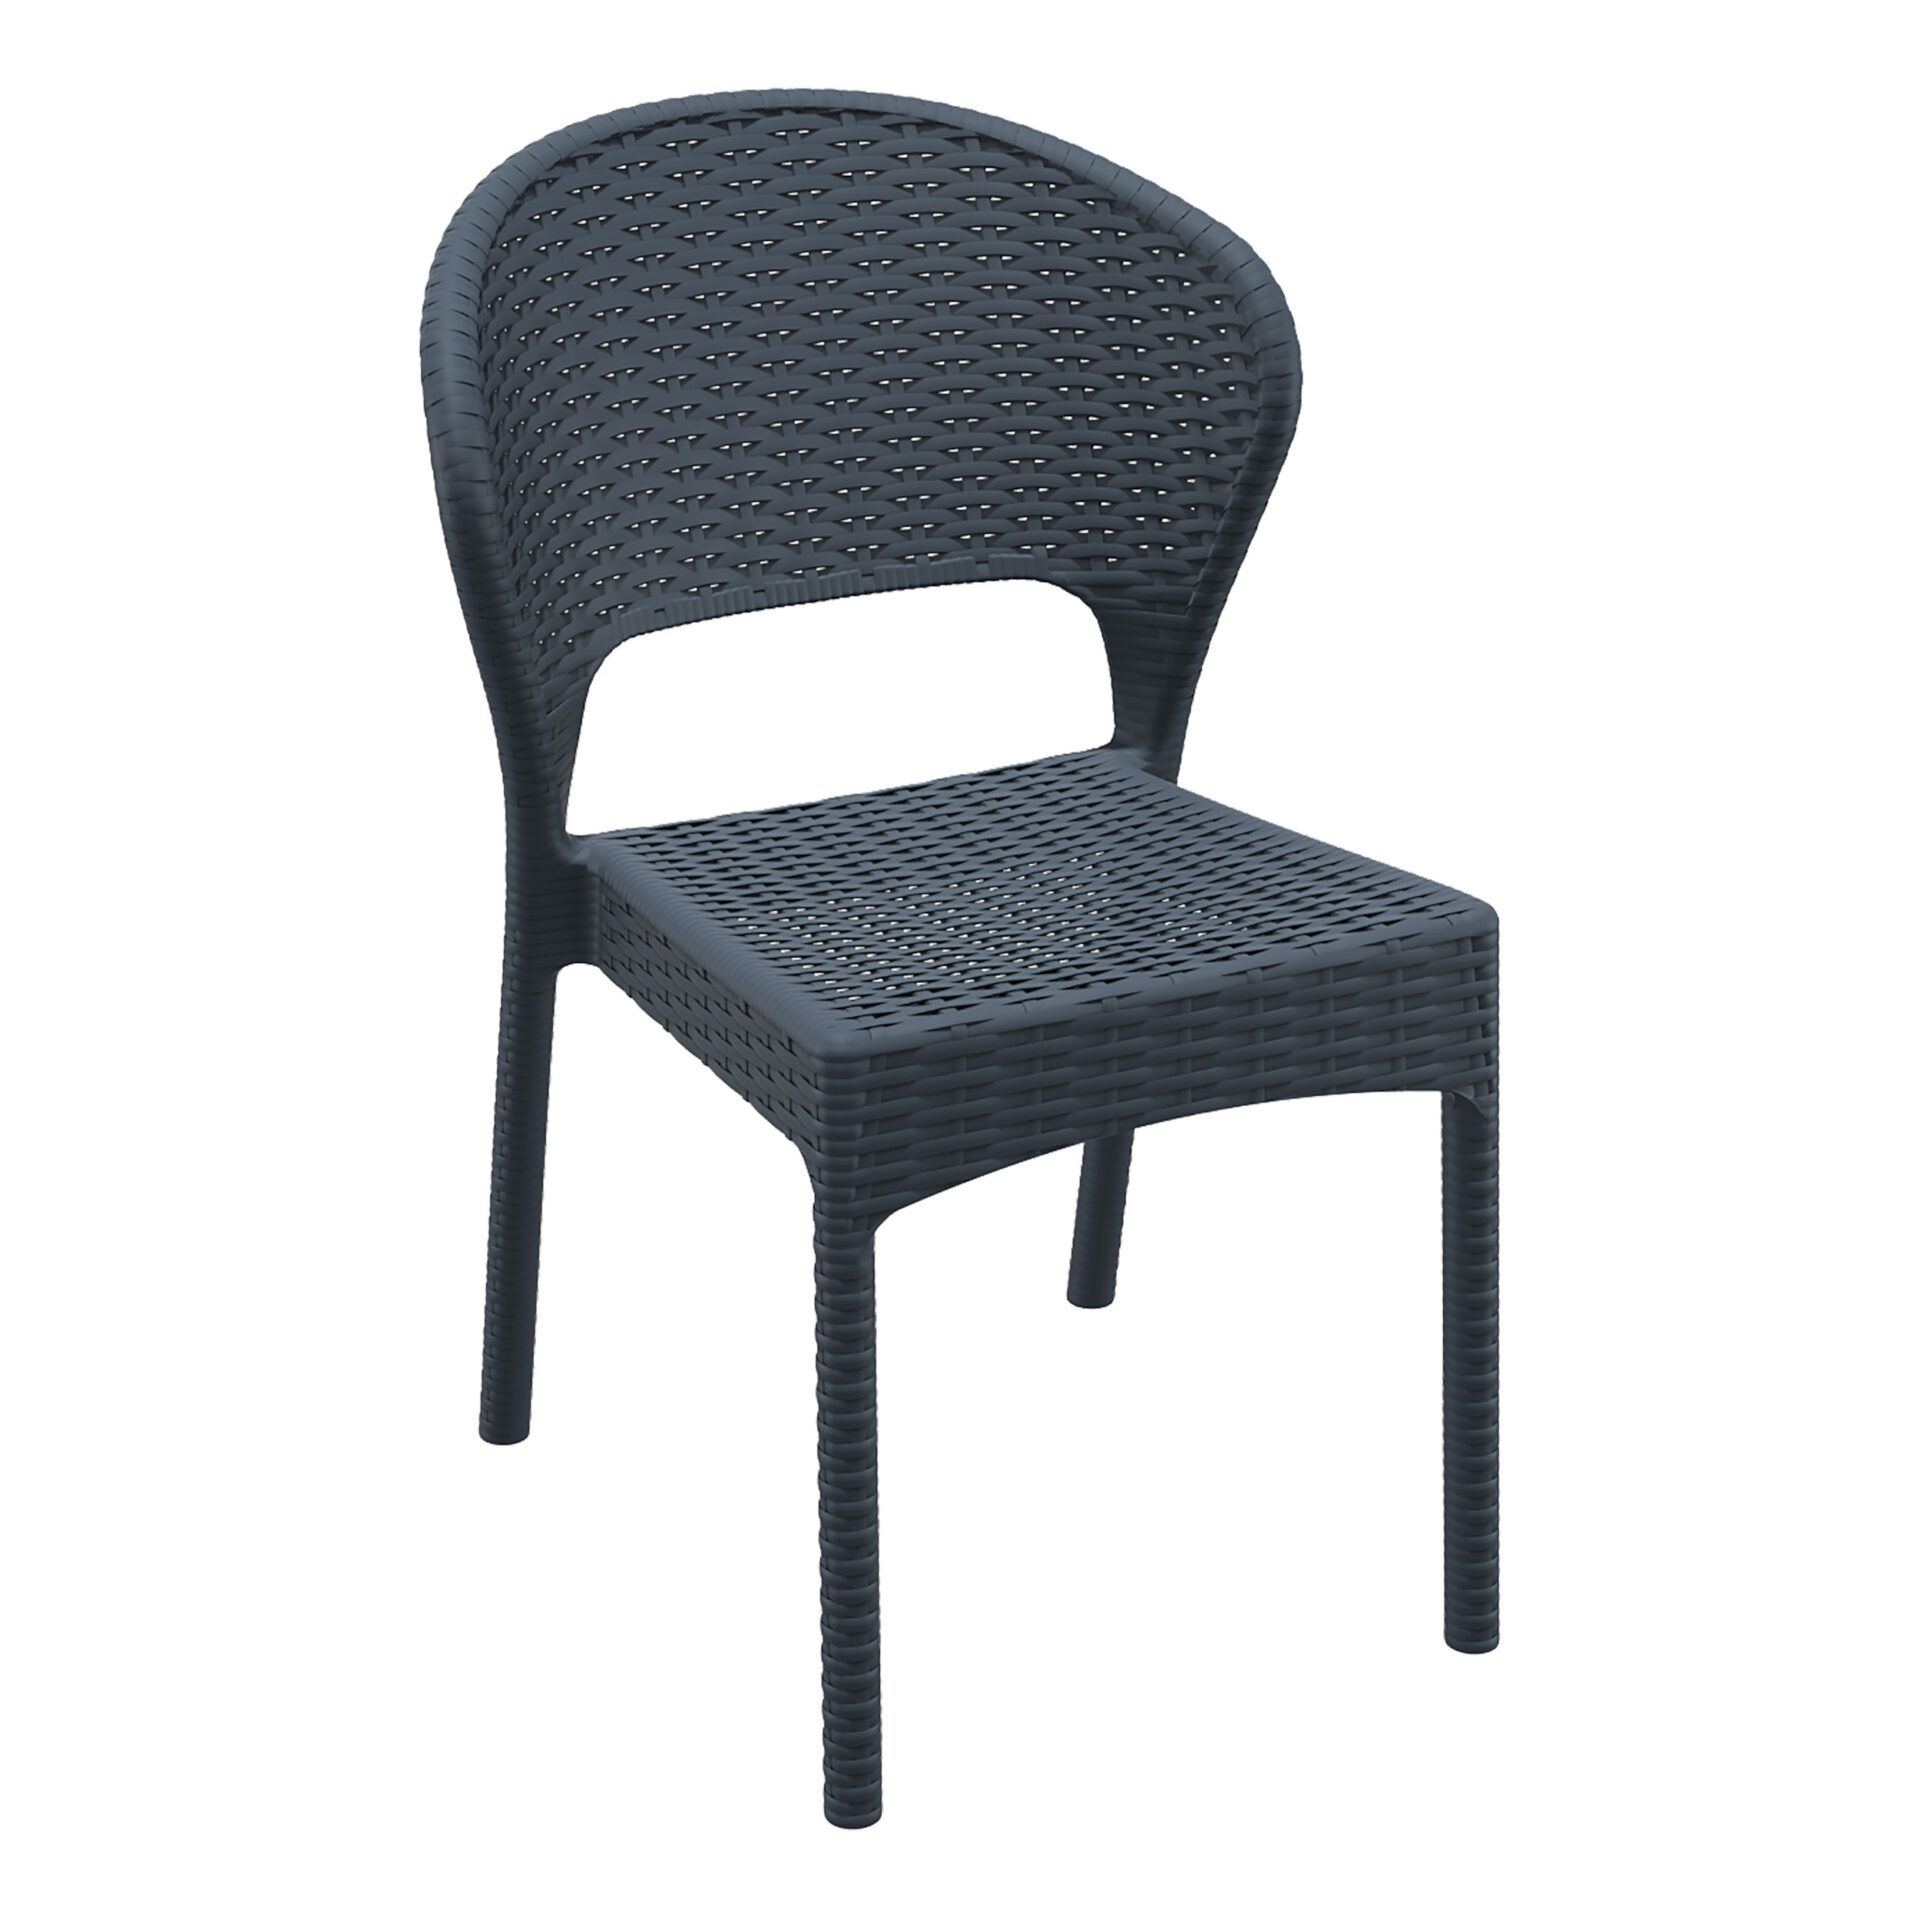 resin rattan outdoor daytona chair darkgrey front side